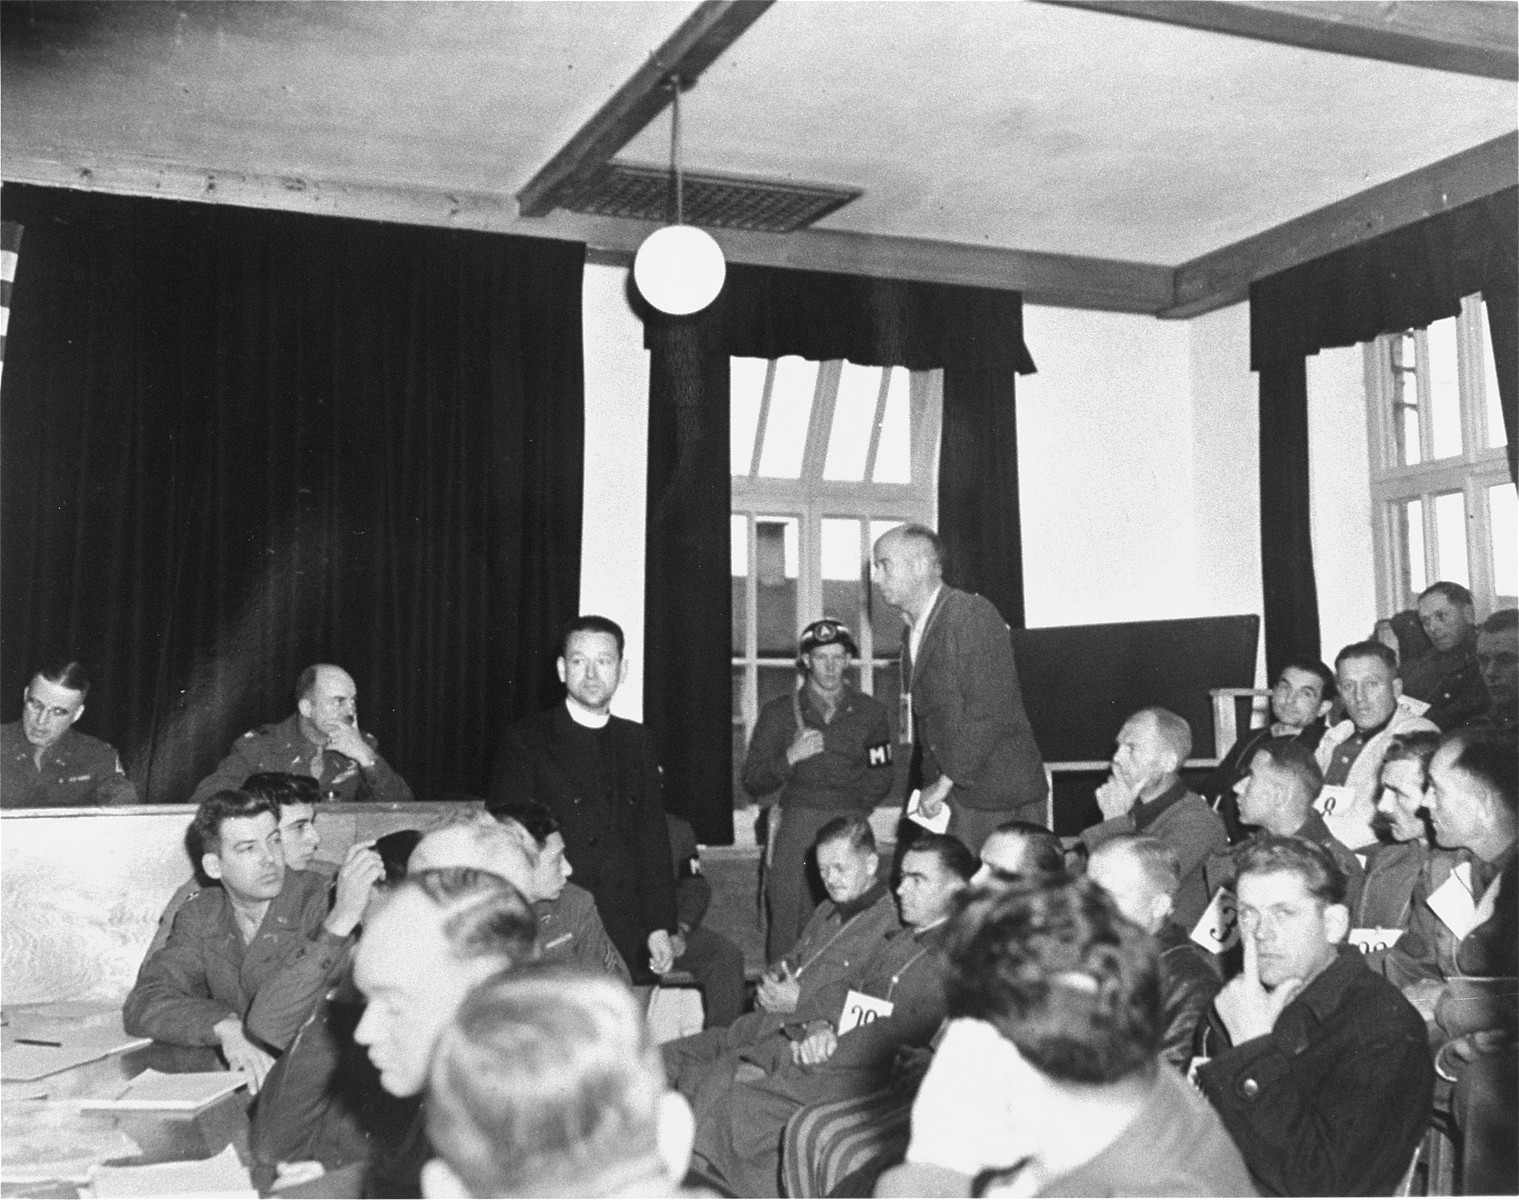 Defendant Fritz M. K. Becher answers the court's call to testify during the trial of former camp personnel and prisoners from Dachau.